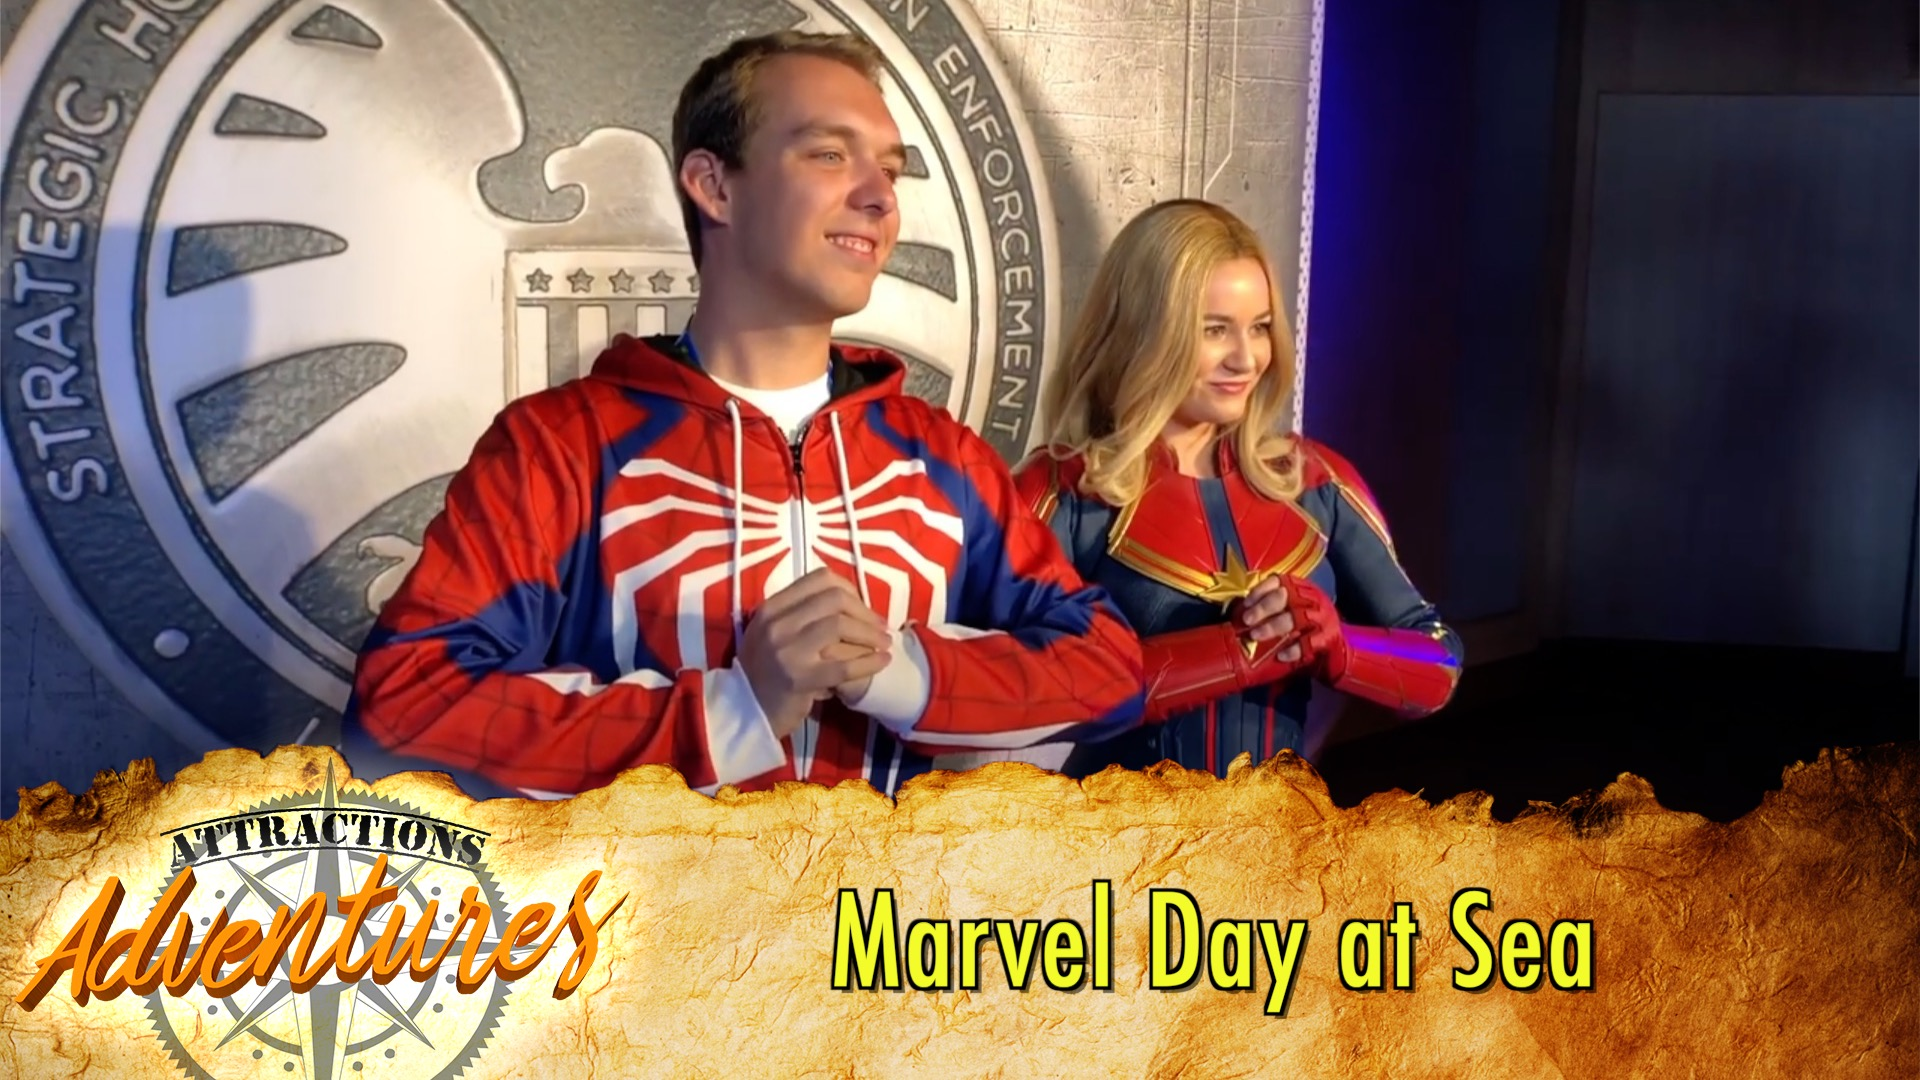 Marvel Day At Sea On The Disney Magic Cruise Attractions